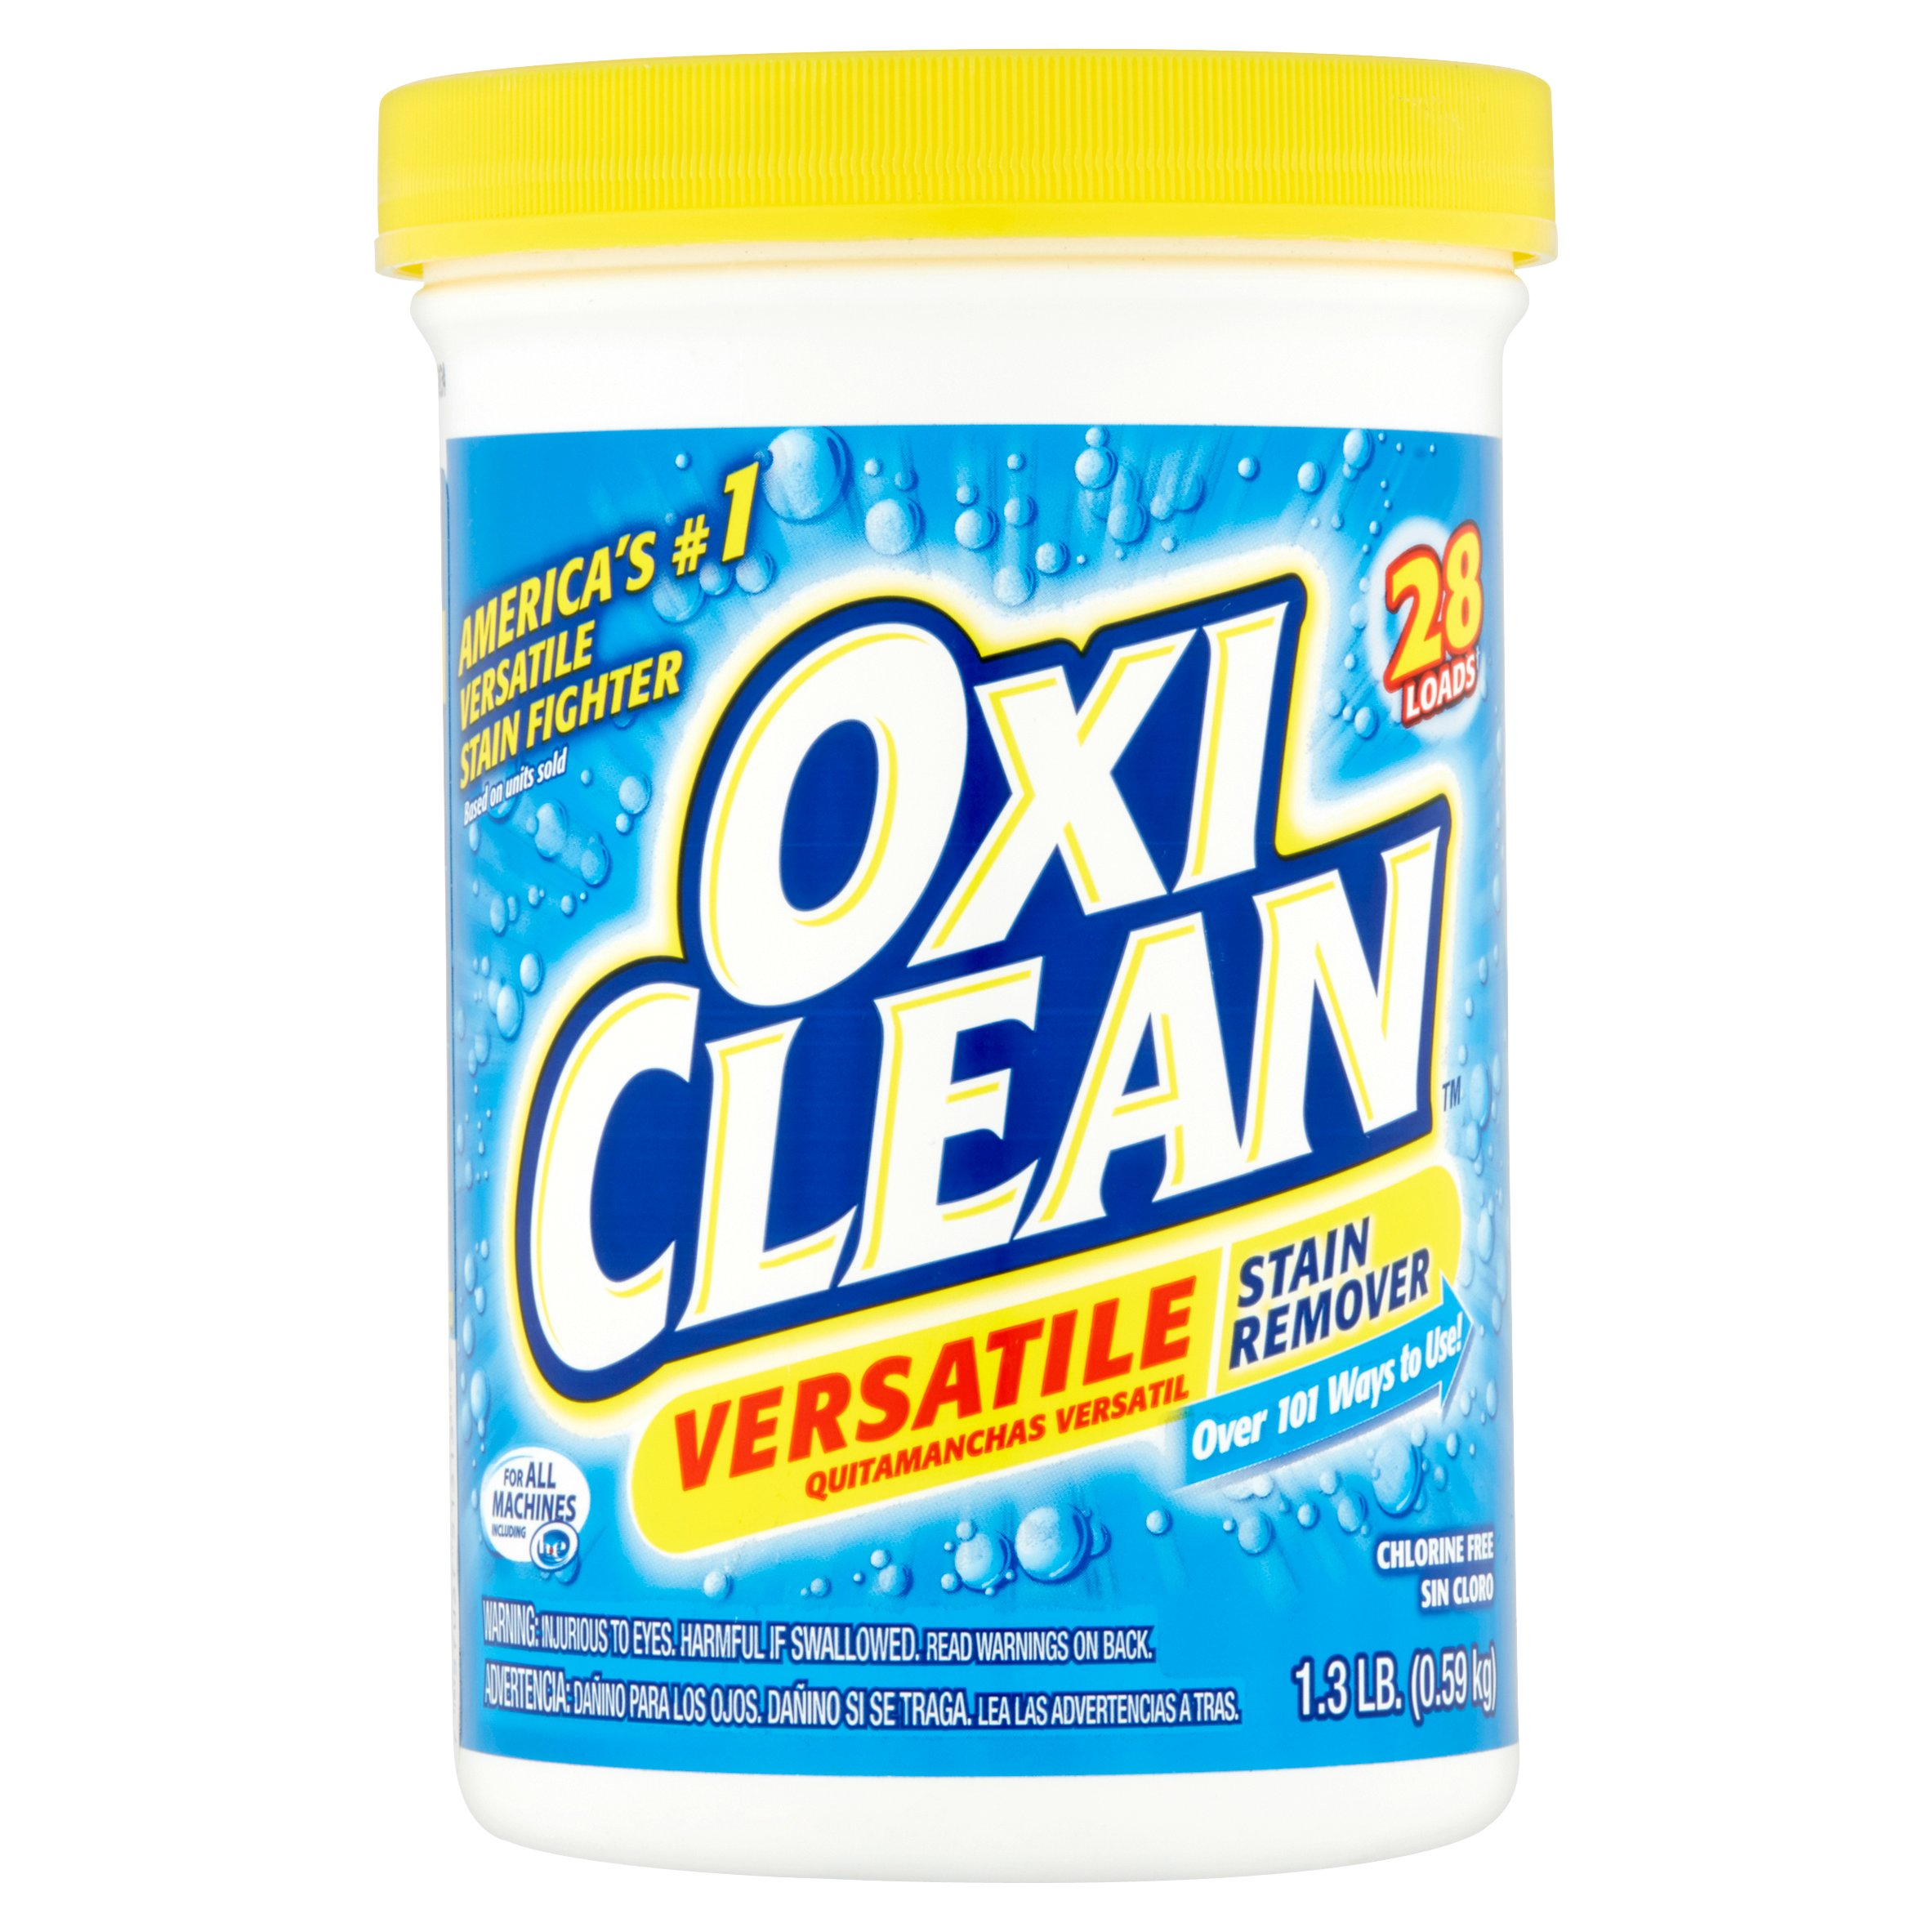 OxiClean Versatile Stain Remover 28 Loads 1.3 lb